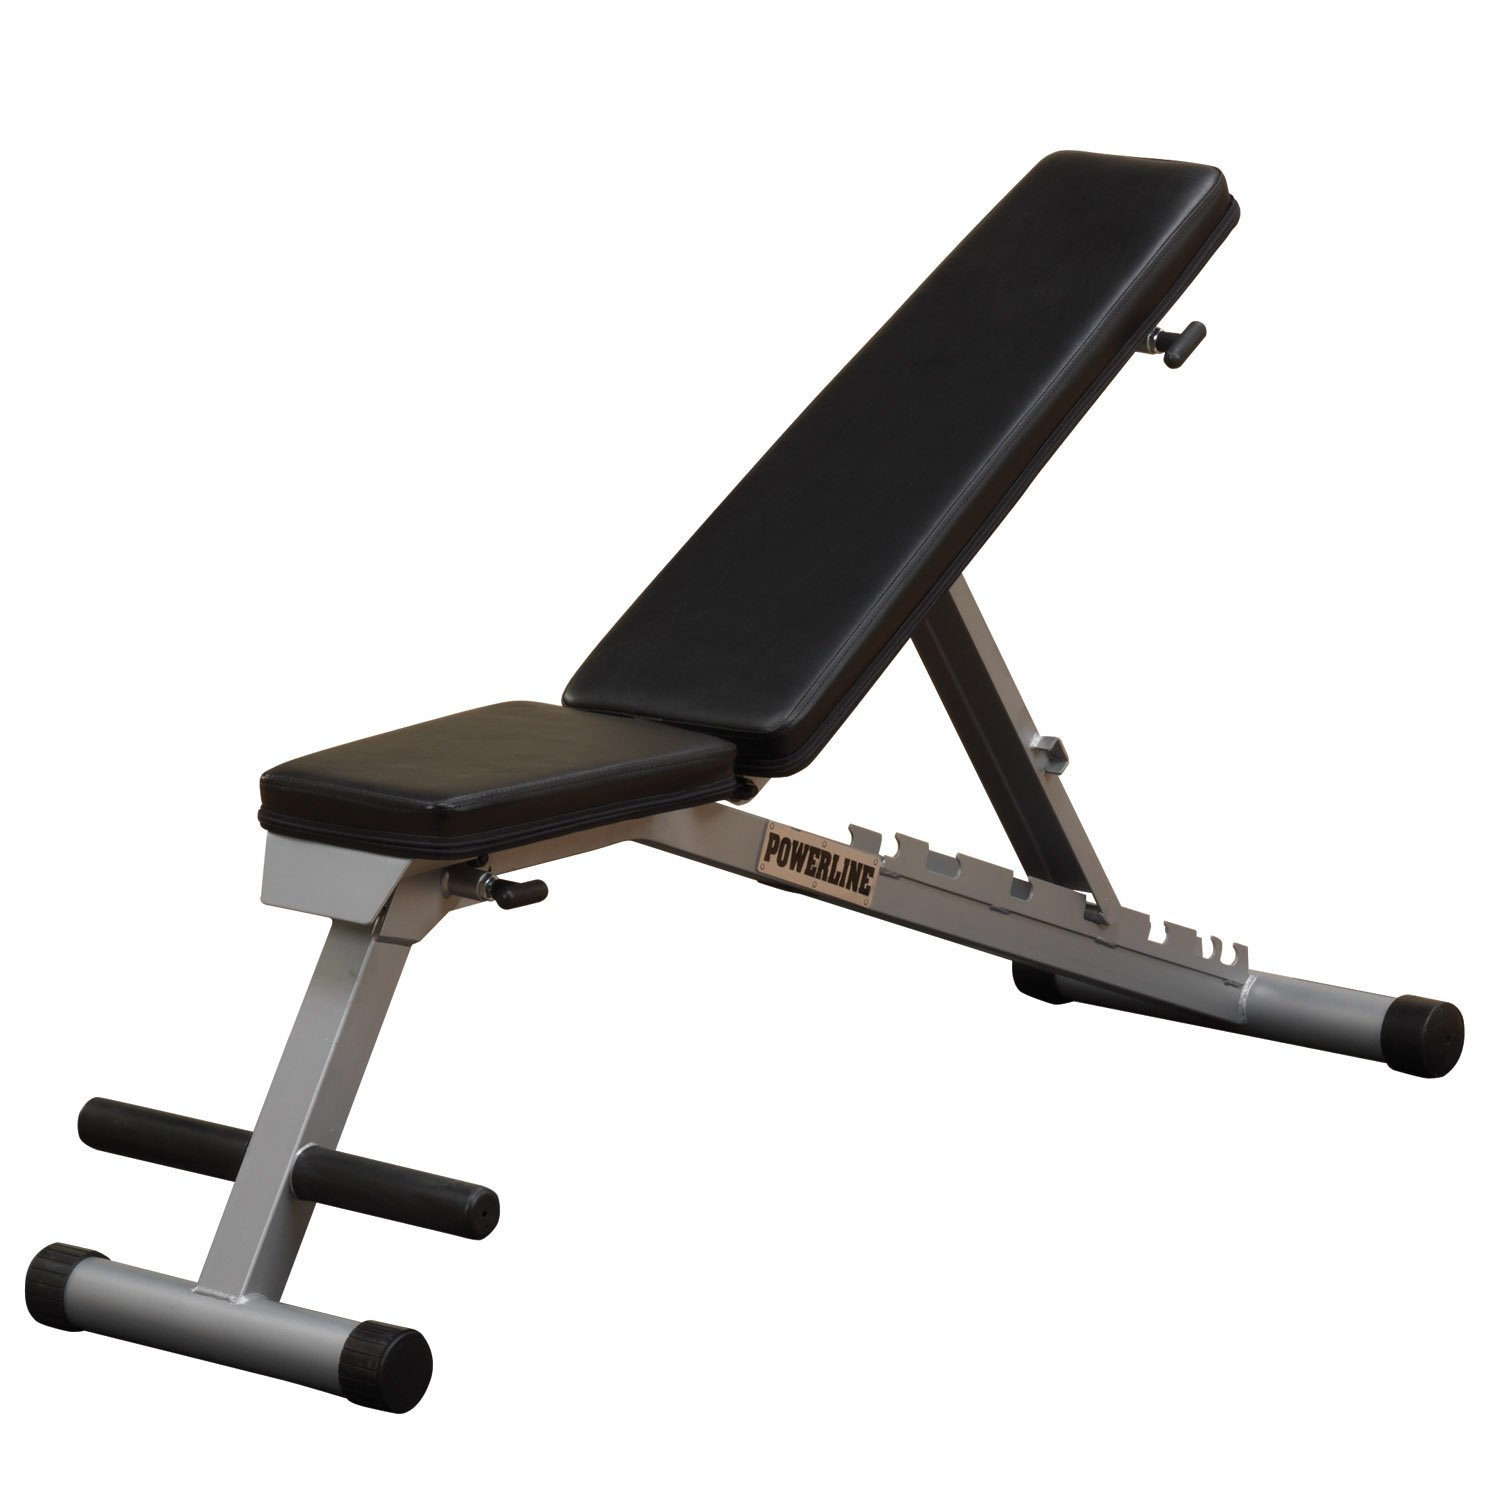 Powerline pfid125x folding bench review Bench weights